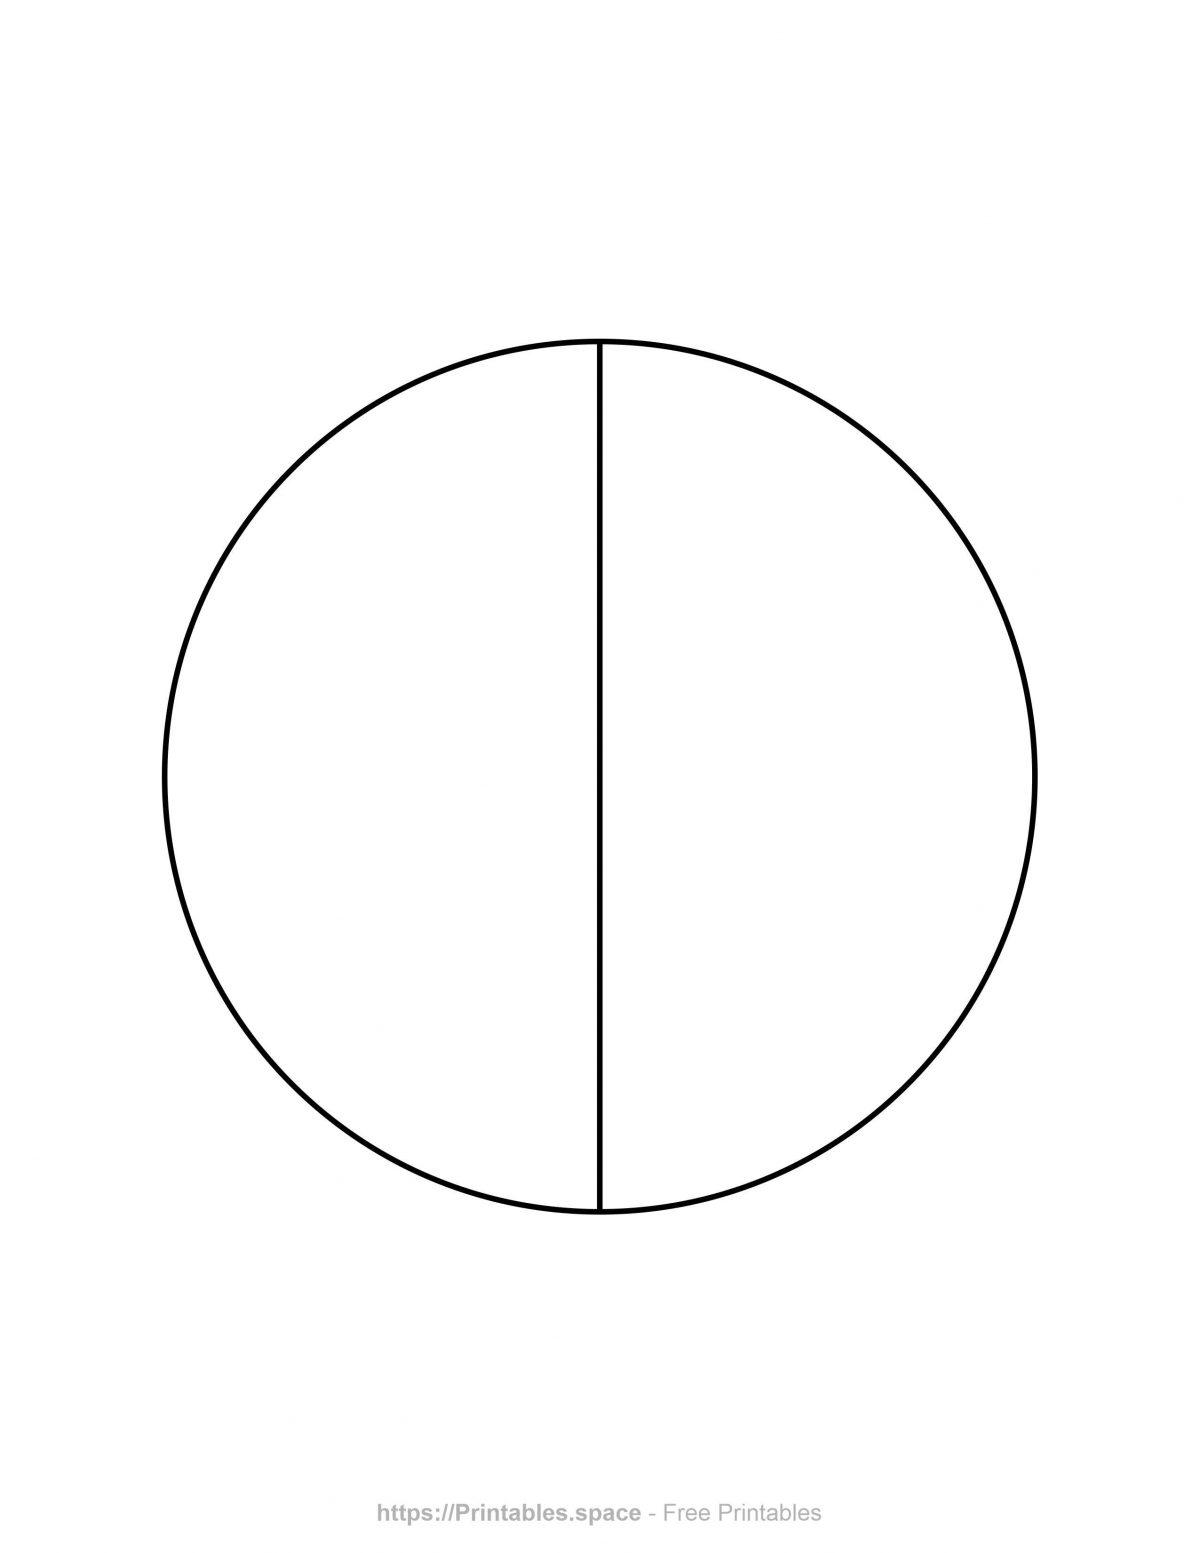 Pie Chart Template - 2 Pieces